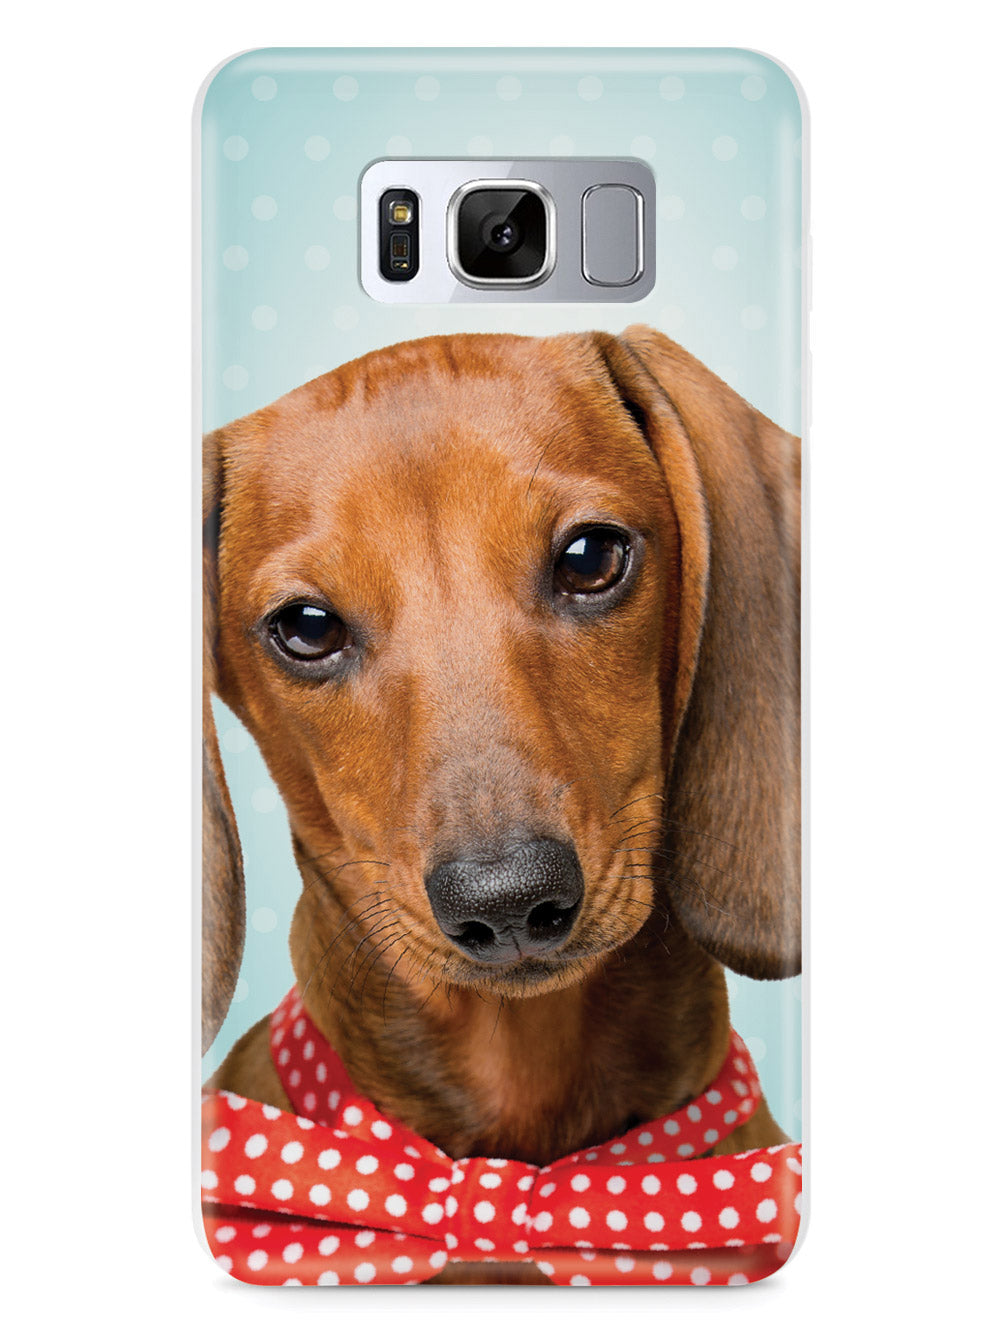 Dachshund and Polka Dots - Real Life Case